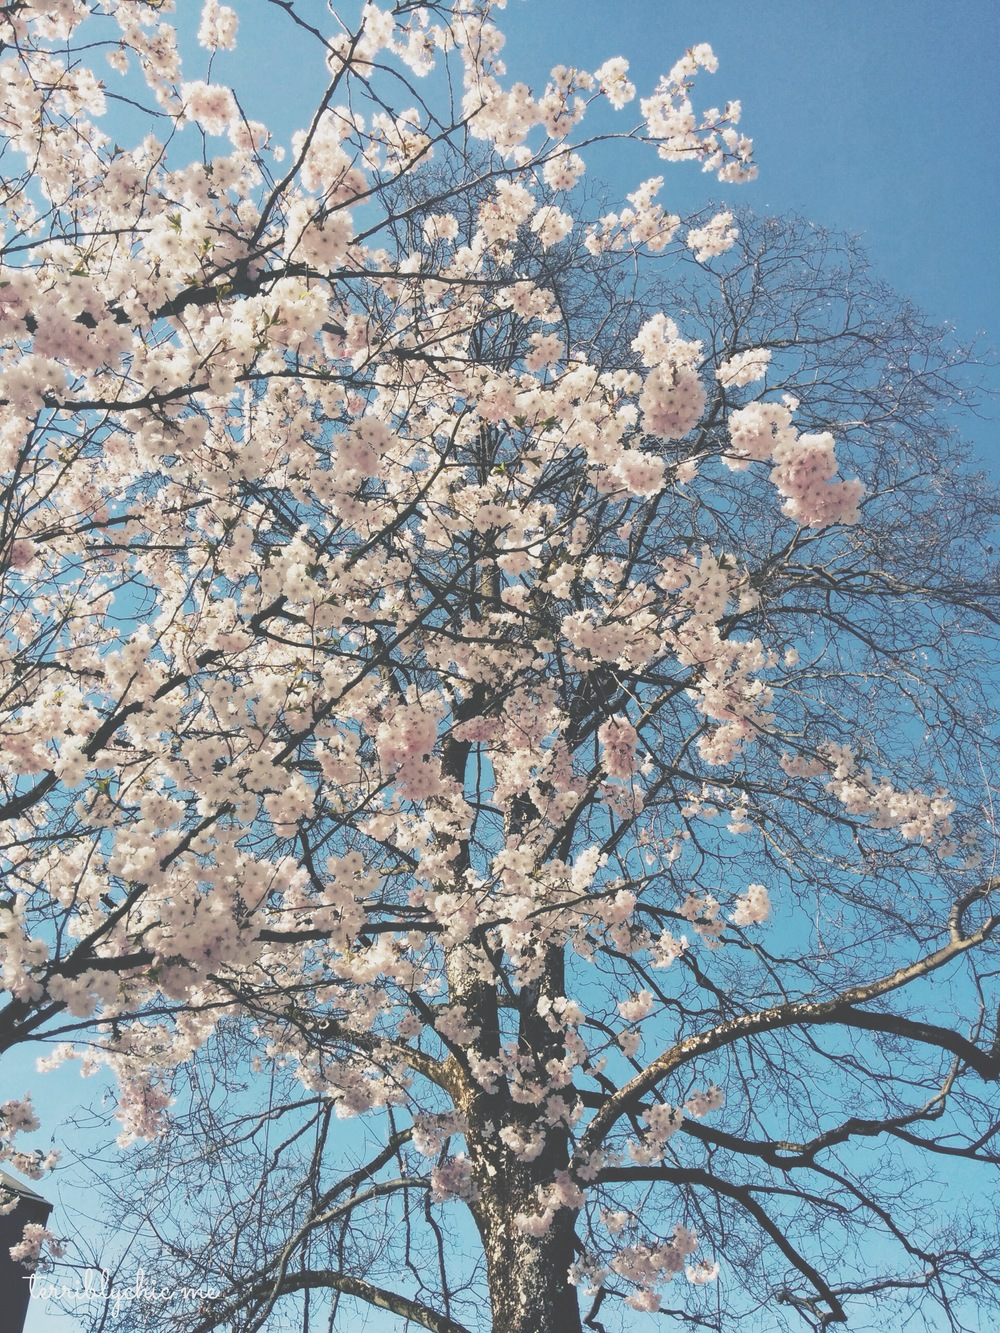 a blossomed tree that I saw somewhere as I stroll around.